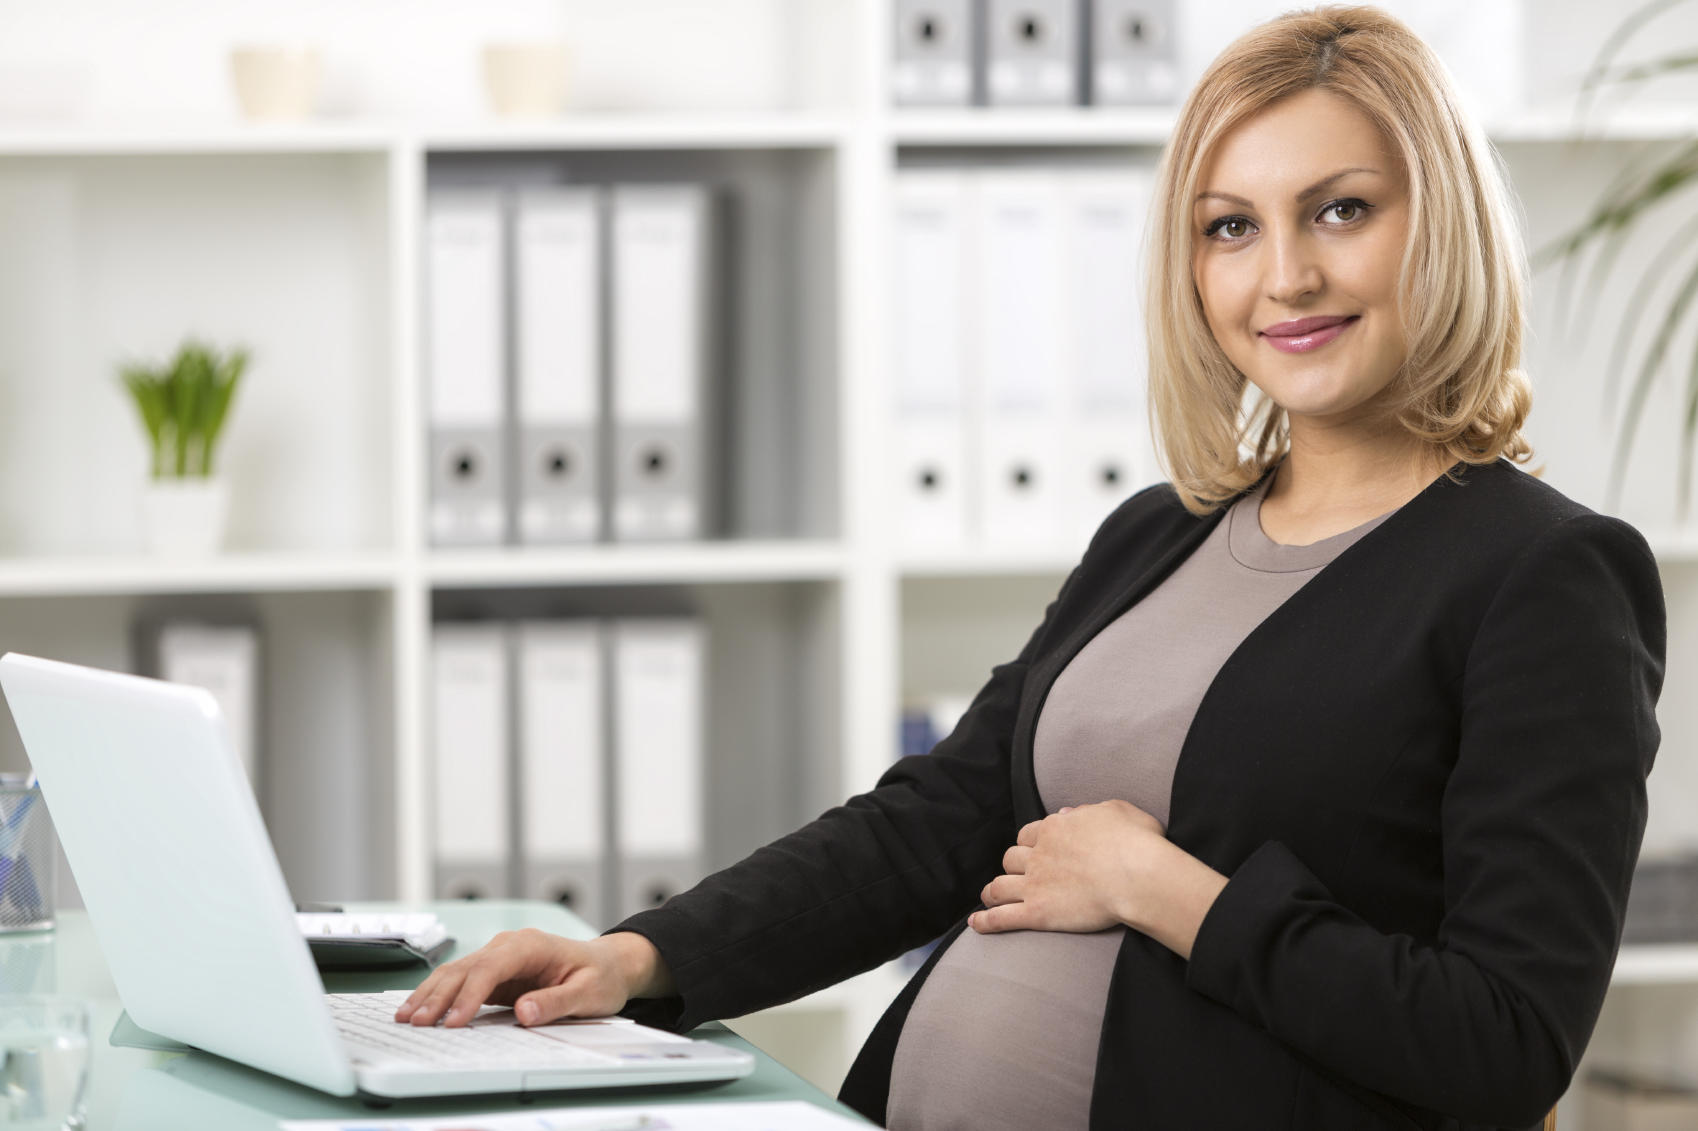 Pregnant businesswoman working on a laptop